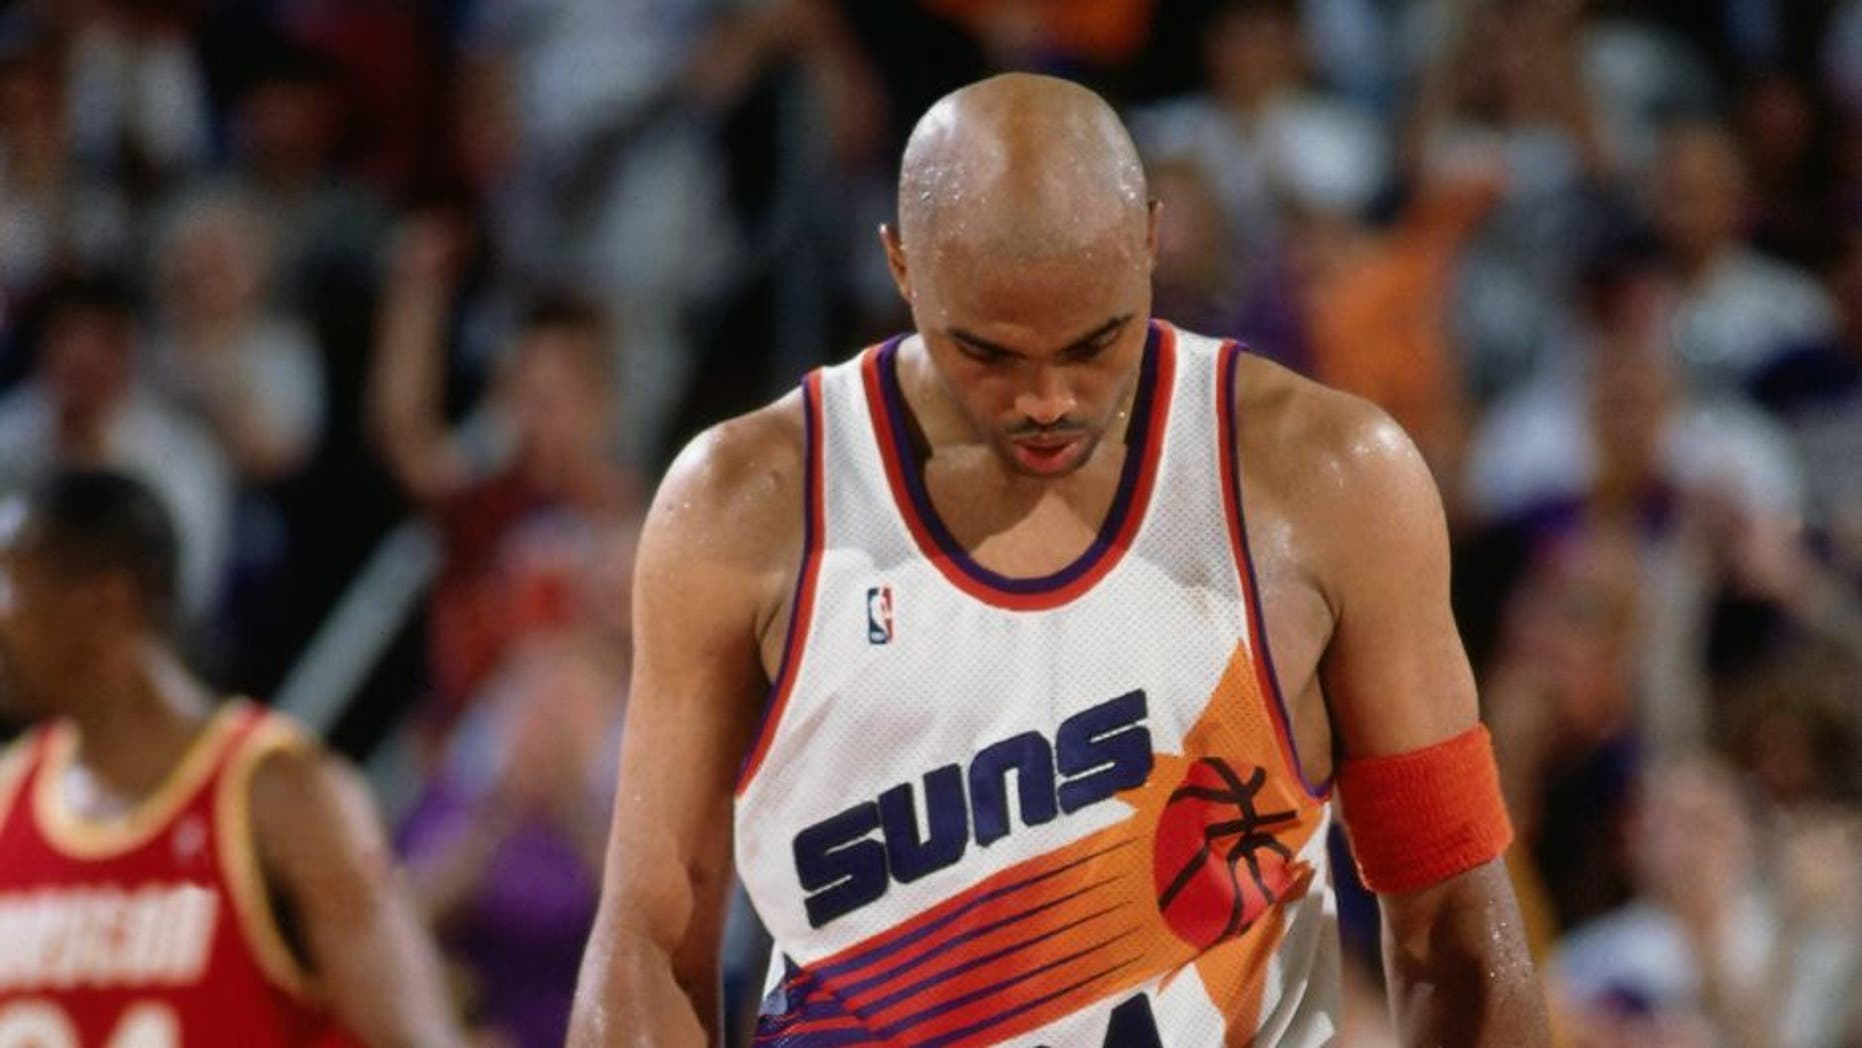 PHOENIX - MAY 20: Charles Barkley #34 of the Phoenix Suns walks with his head down during Game Seven of the 1995 NBA Western Conference semifinals against the Houston Rockets on May 20, 1995 at the American West Arena in Phoenix, Arizona. Houston defeated Phoenix 115-114 and won the series 4-3. NOTE TO USER: User expressly acknowledges that, by downloading and or using this photograph, User is consenting to the terms and conditions of the Getty Images License agreement. Mandatory Copyright Notice: Copyright 1995 NBAE (Photo by Andrew D. Bernstein/NBAE via Getty Images)